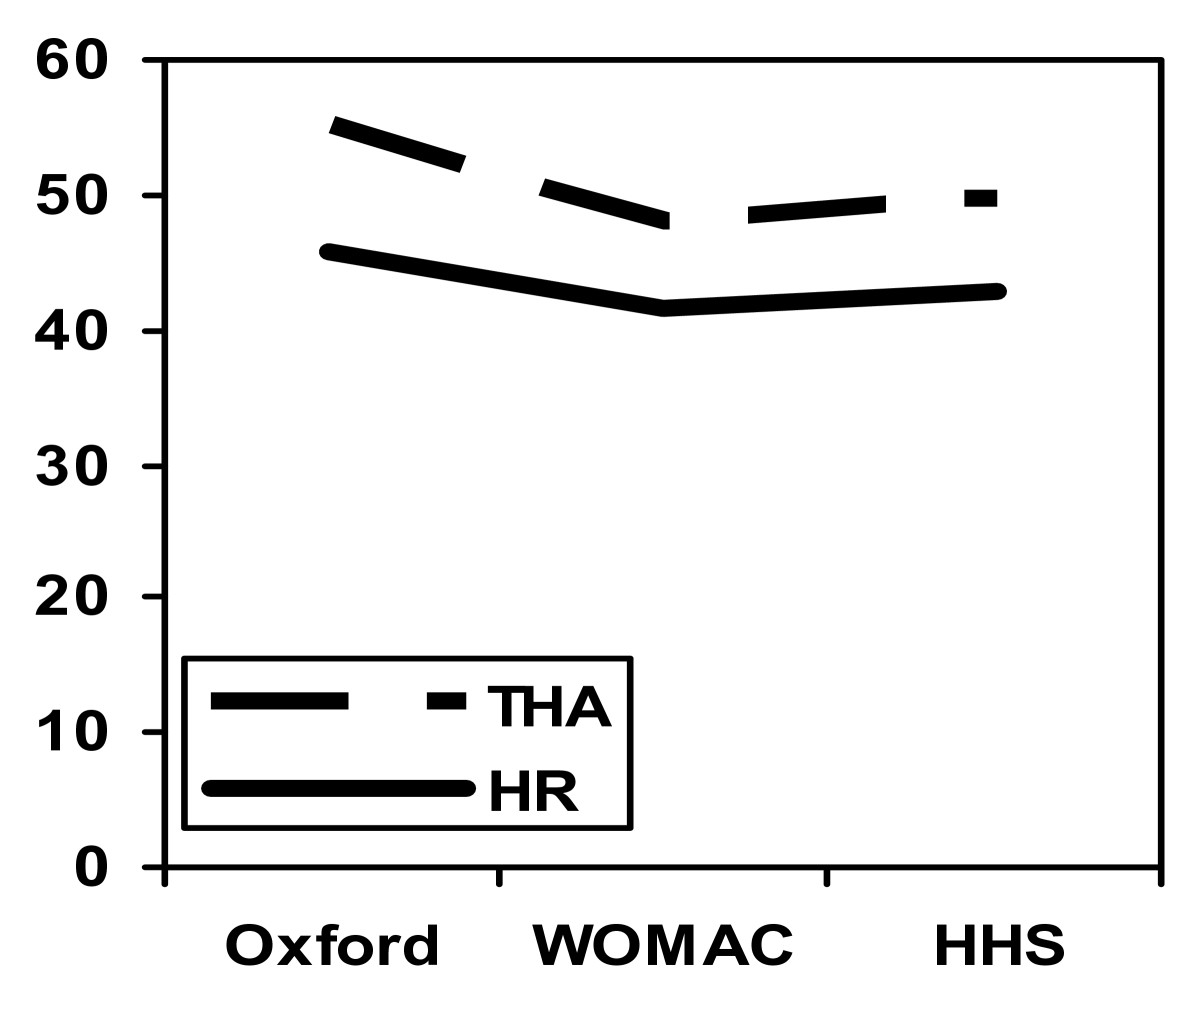 https://static-content.springer.com/image/art%3A10.1186%2F1749-799X-5-8/MediaObjects/13018_2009_Article_150_Fig4_HTML.jpg